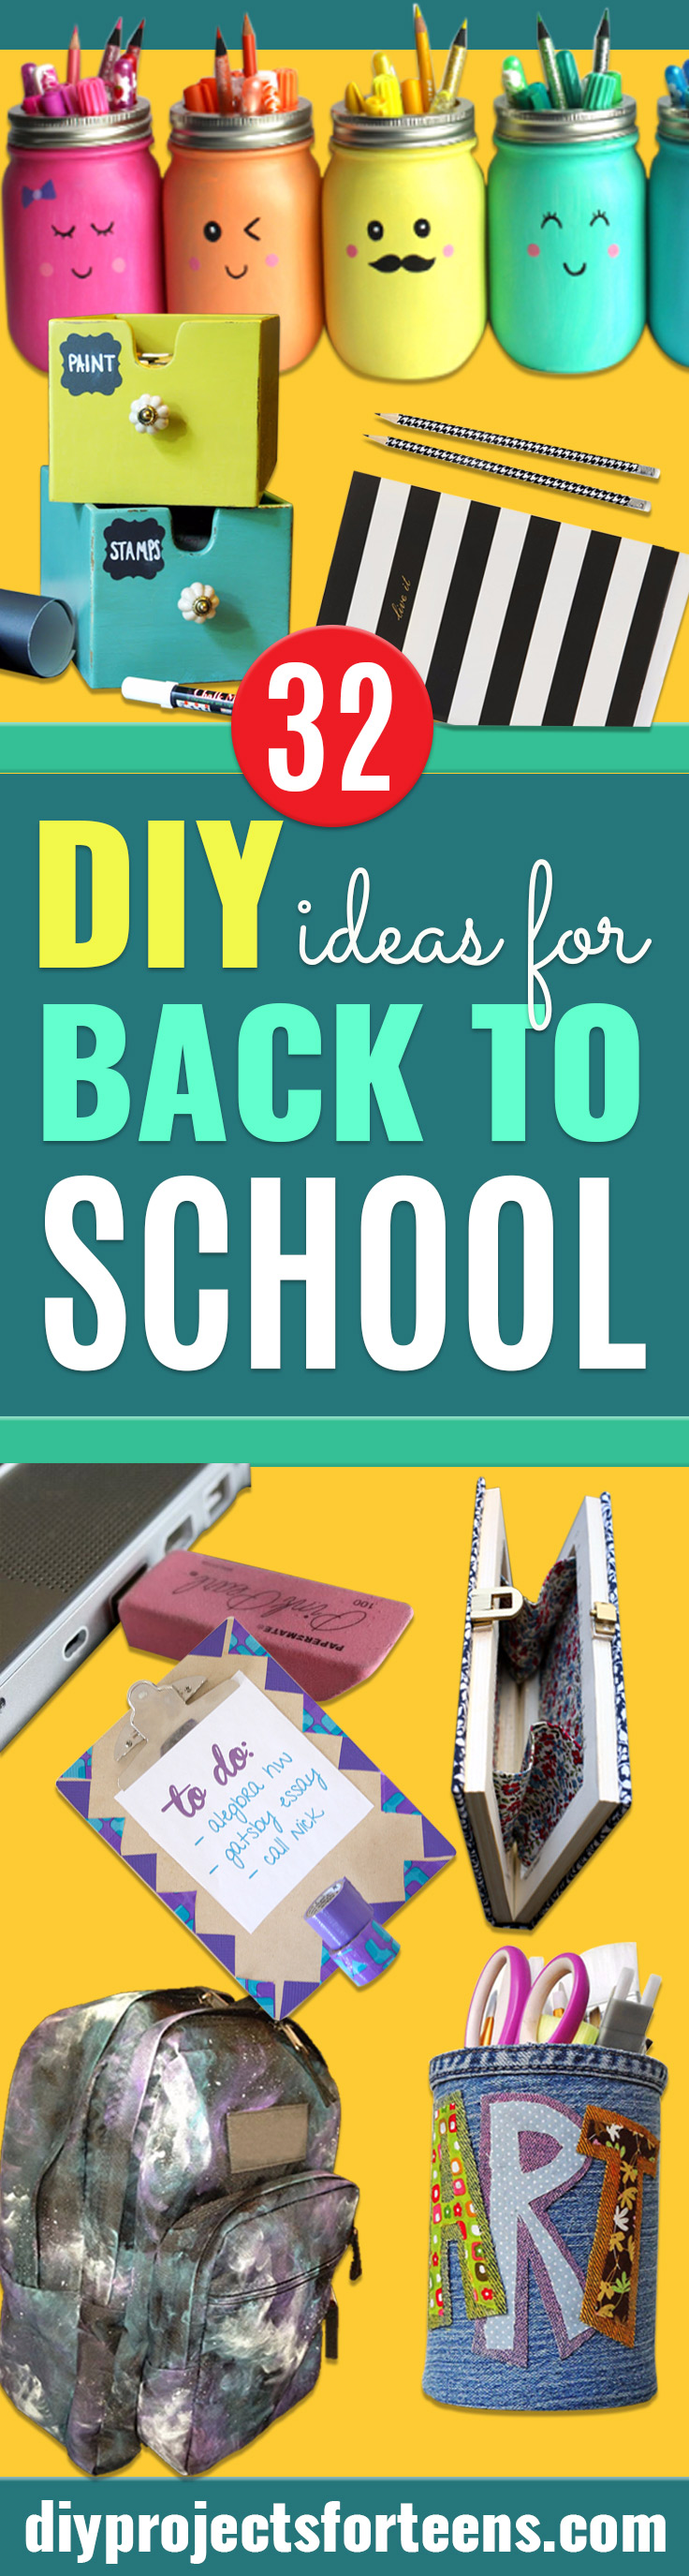 32 DIY Ideas For Back To School Supplies DIY Projects